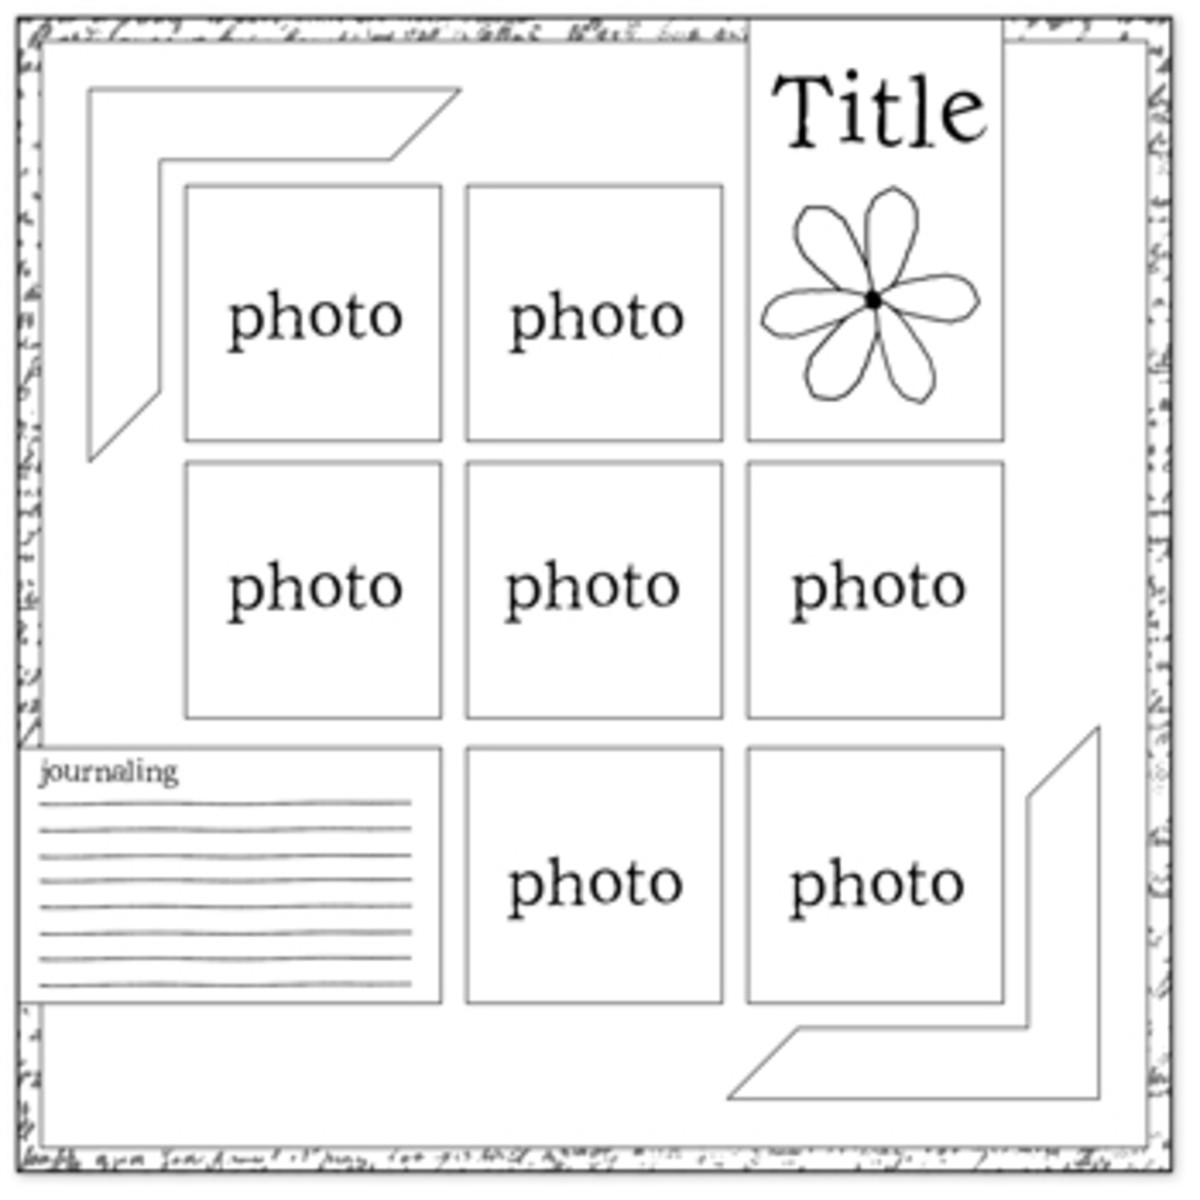 7 PHOTO LAYOUT